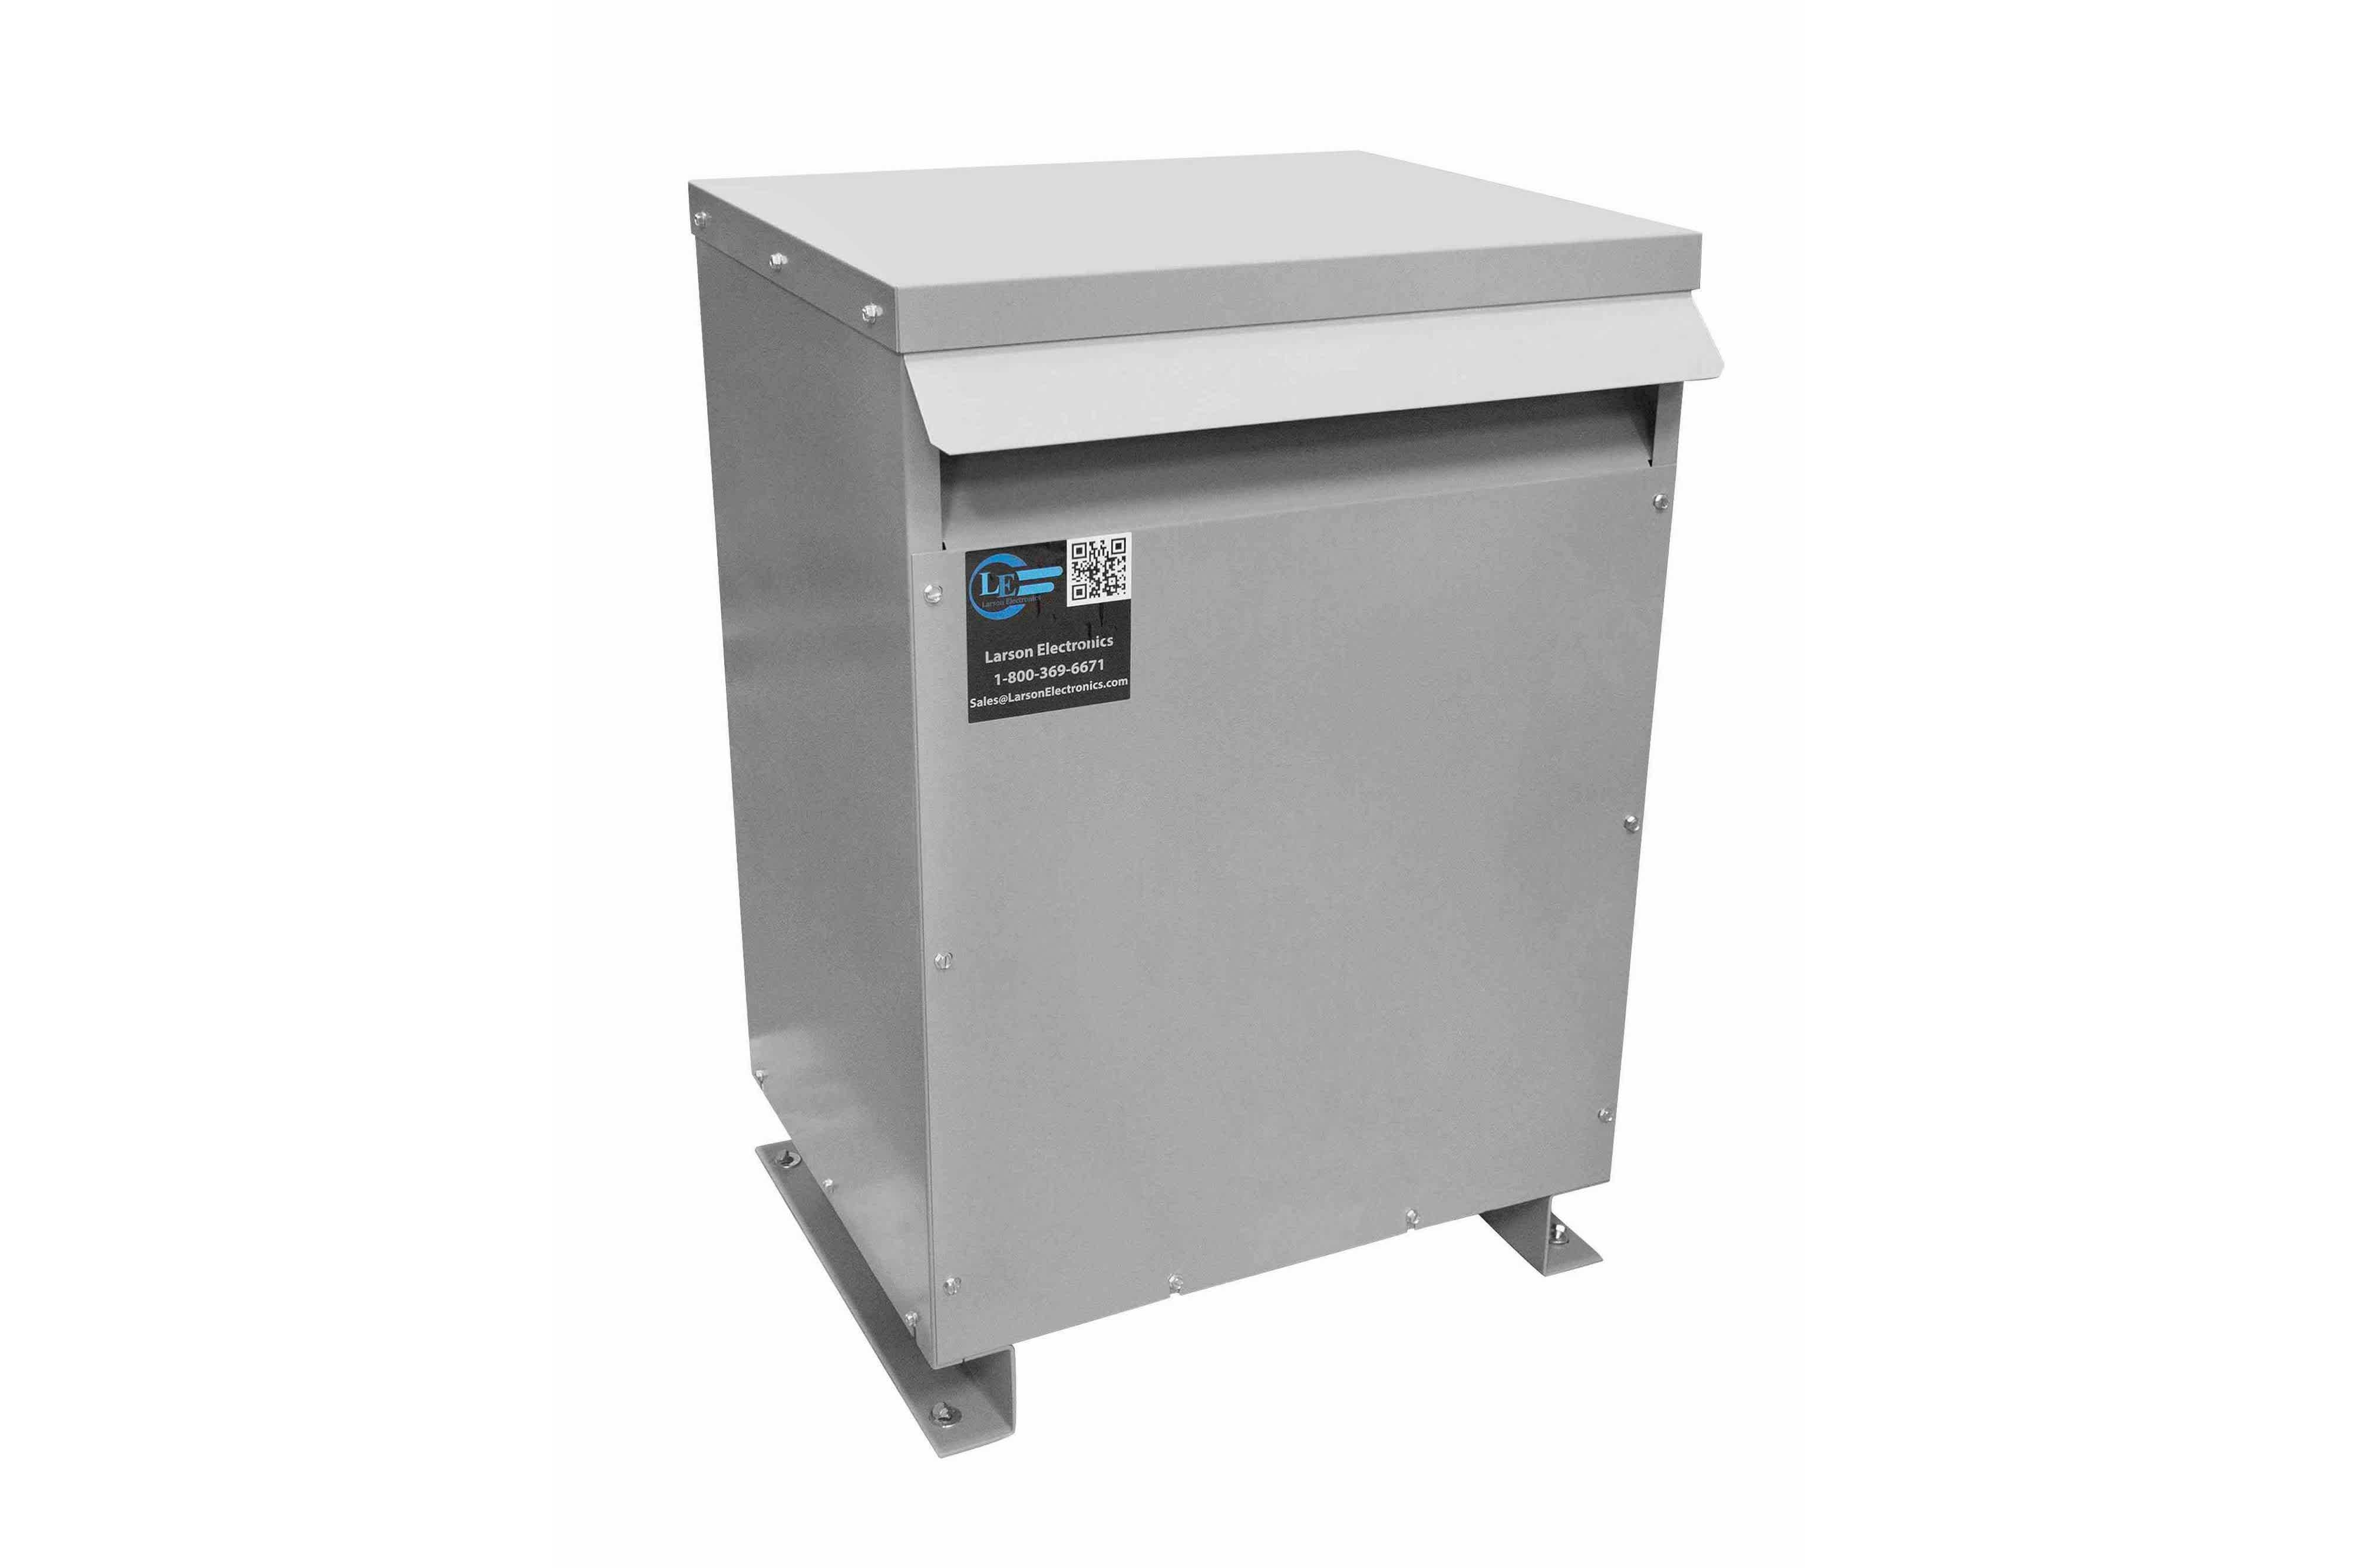 52.5 kVA 3PH Isolation Transformer, 220V Wye Primary, 480Y/277 Wye-N Secondary, N3R, Ventilated, 60 Hz